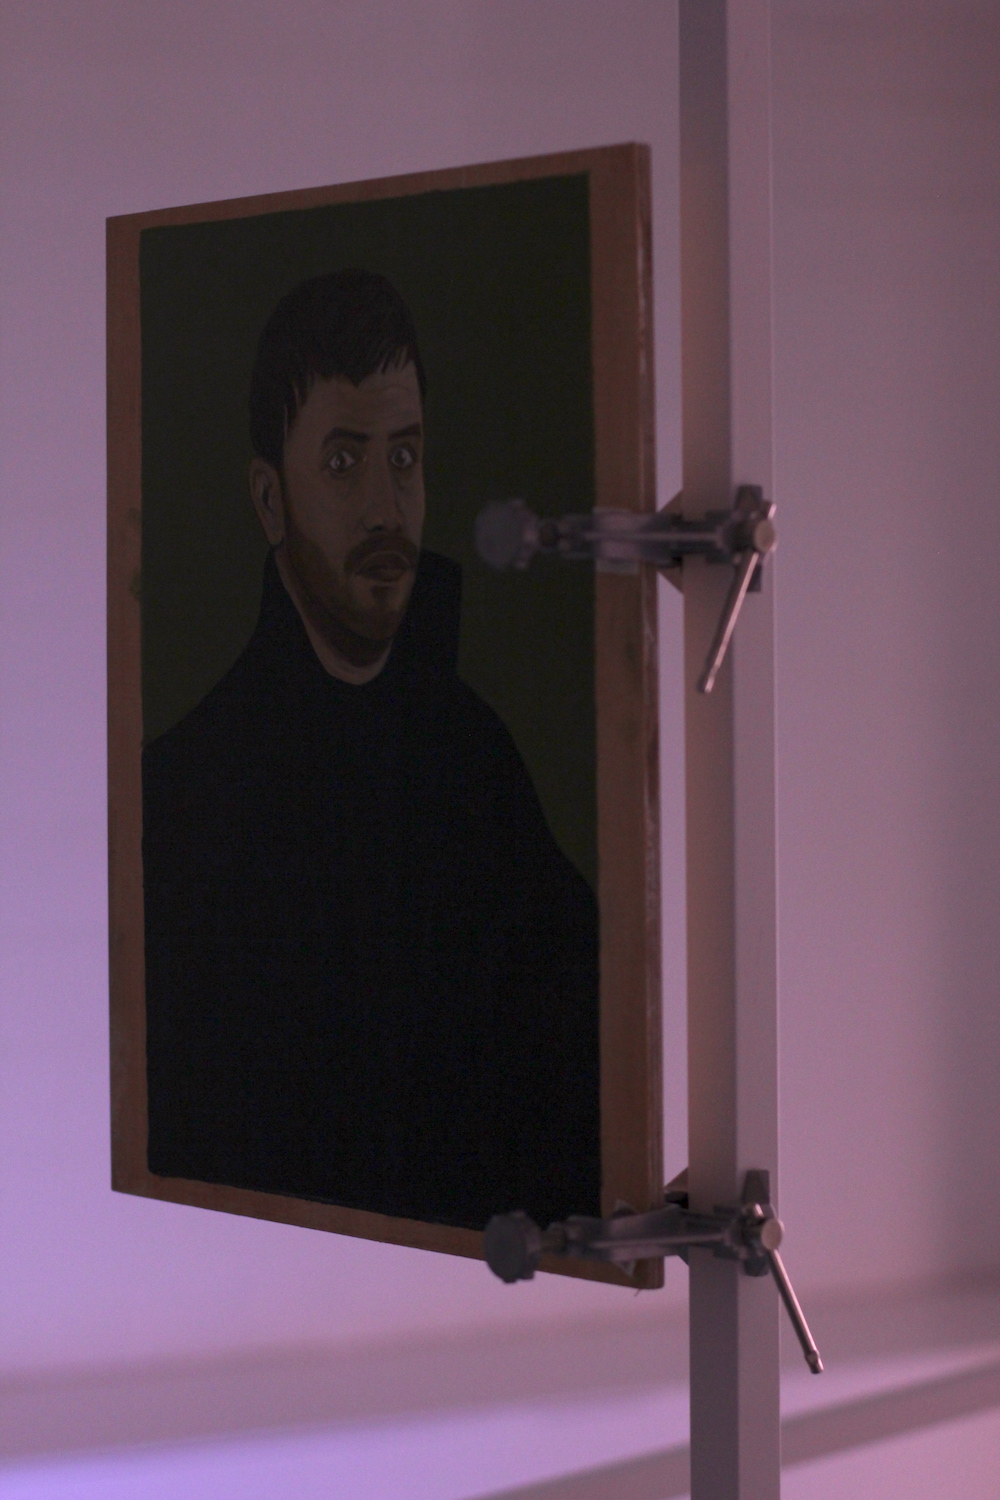 - Nick Garner, Self Portrait as Martin Luther (after Lucas Cranach the Elder), 2016; Oil on wood